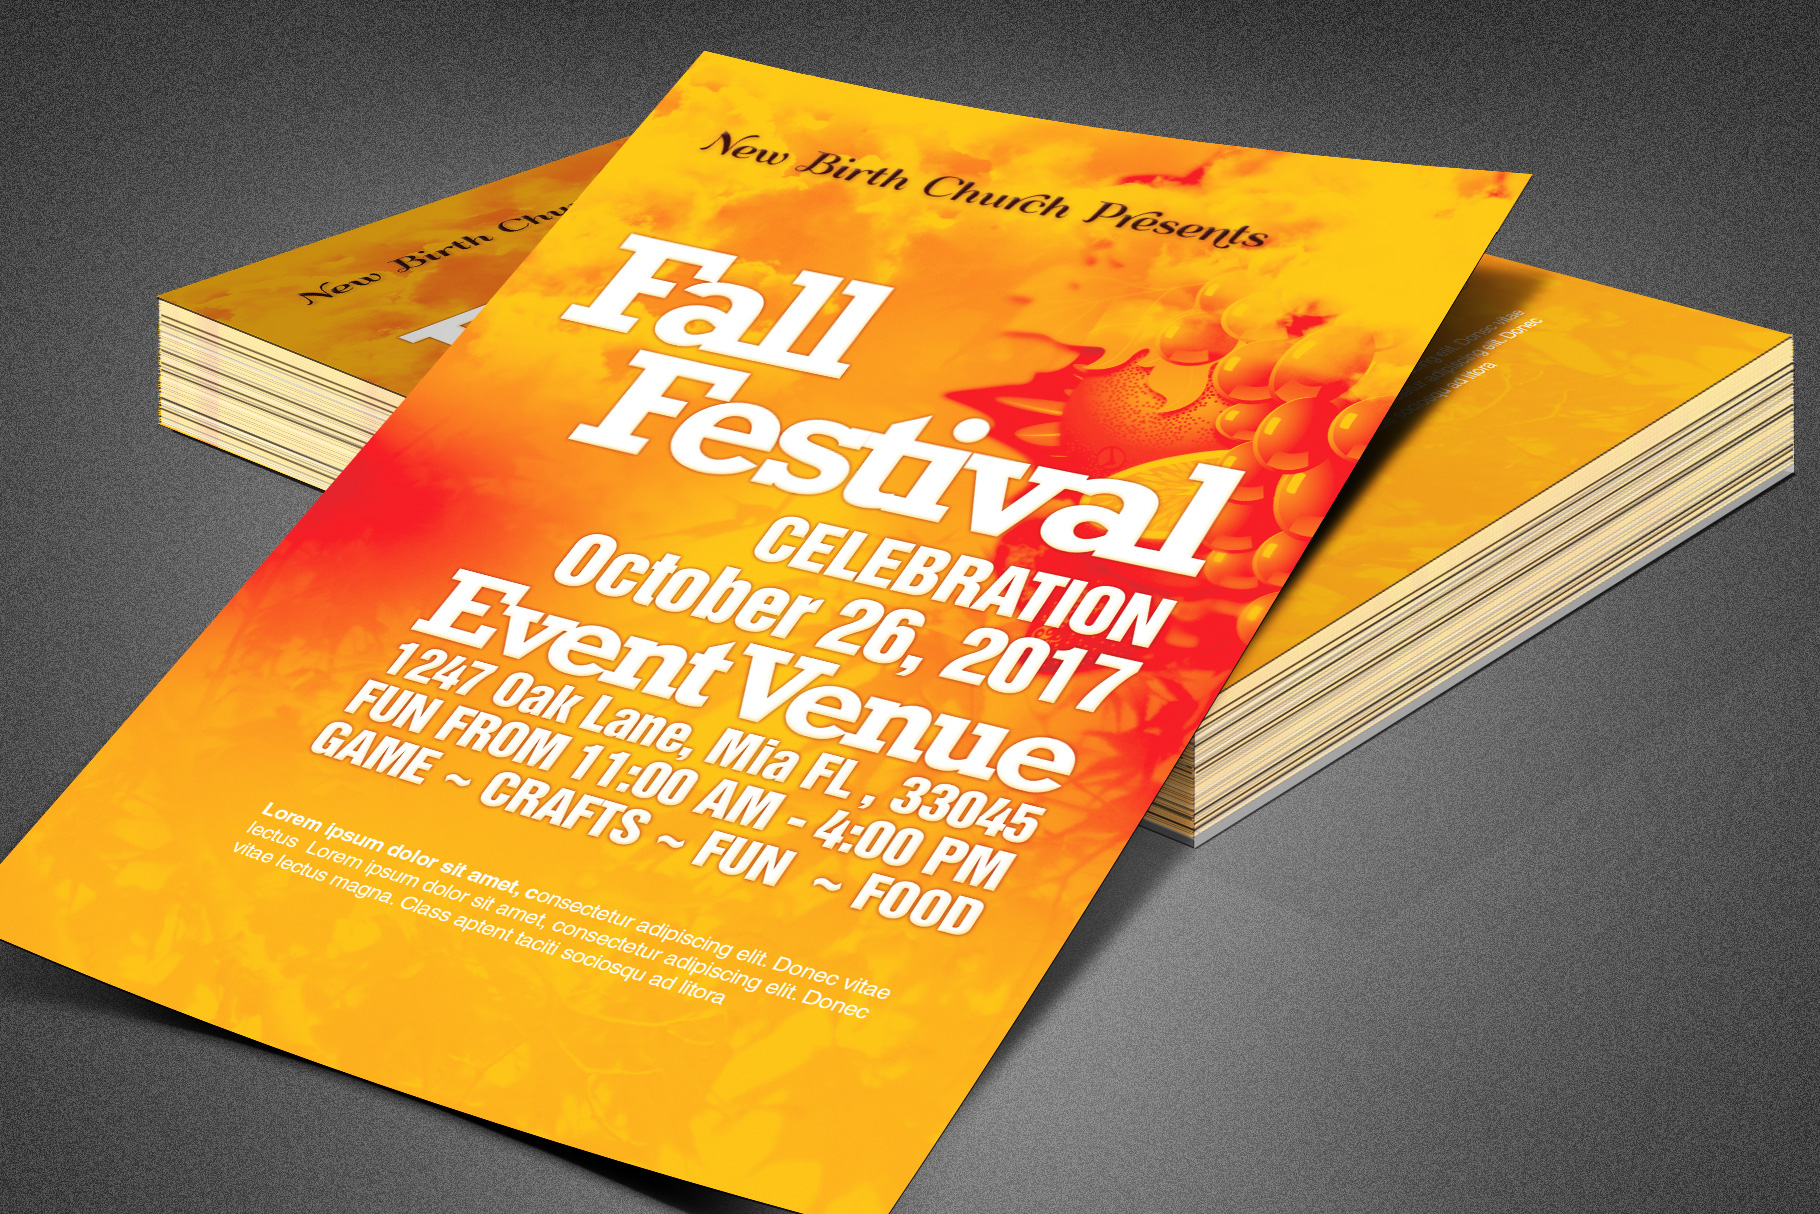 Fall Festival Church Flyer Template example image 1